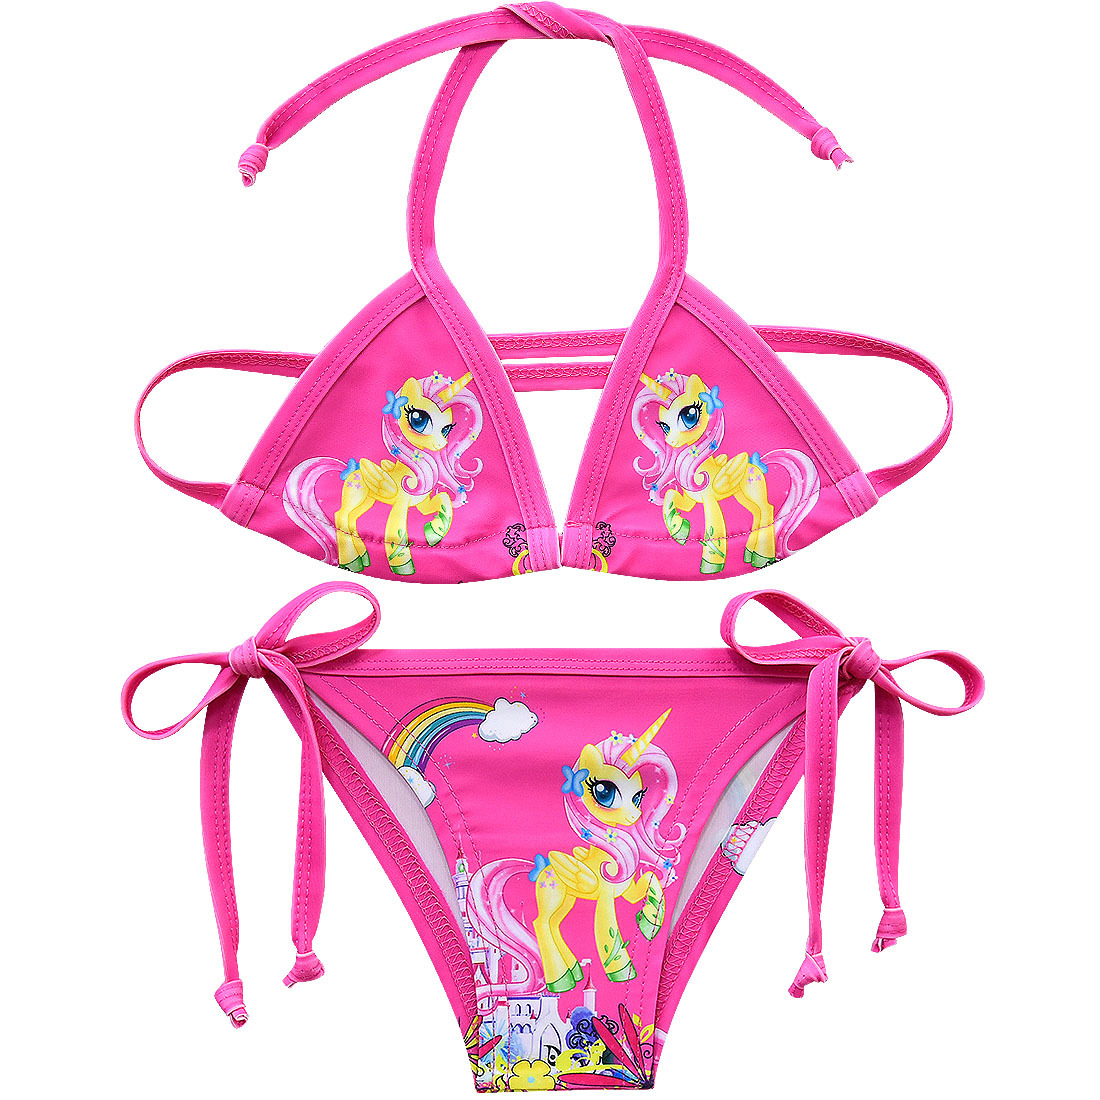 2019 Girls Swimsuits Two-pieces Bikini Suits 3-10y Girls Summer Beach Wear Lovely Cartoon Bathing Suits Swimwear Girl G48-CZ946